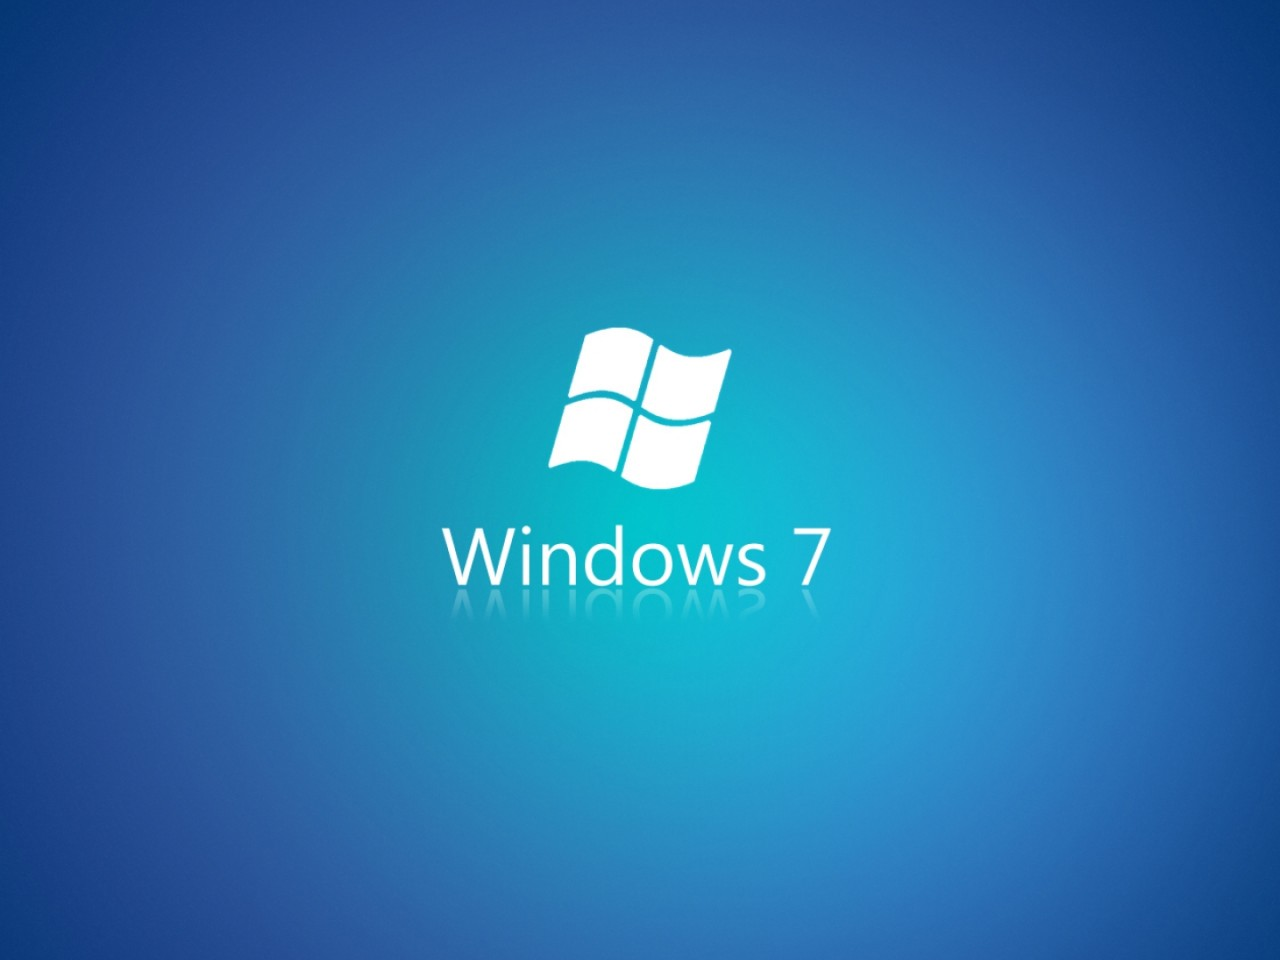 Windows 7 logo wallpaper - HD Wallpapers